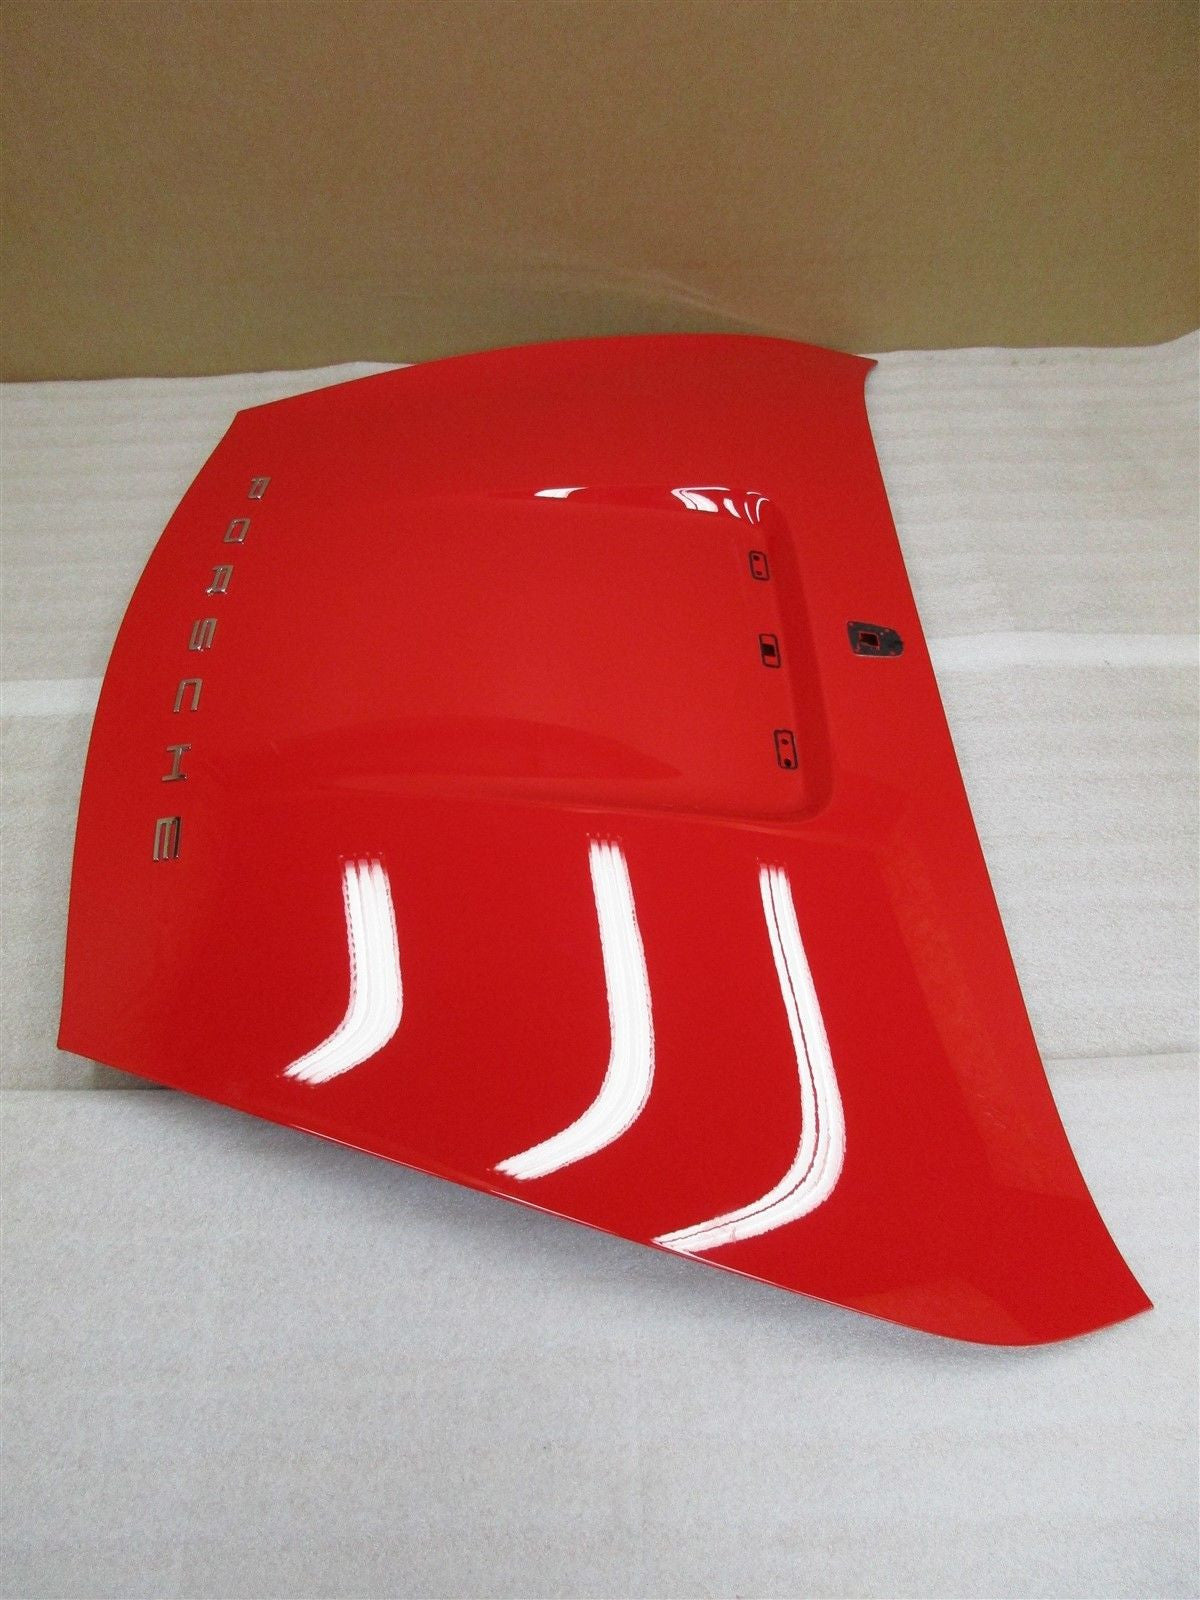 16 Boxster RWD Porsche 981 REAR EXTERIOR HOOD TRIM Red COVER 8,781